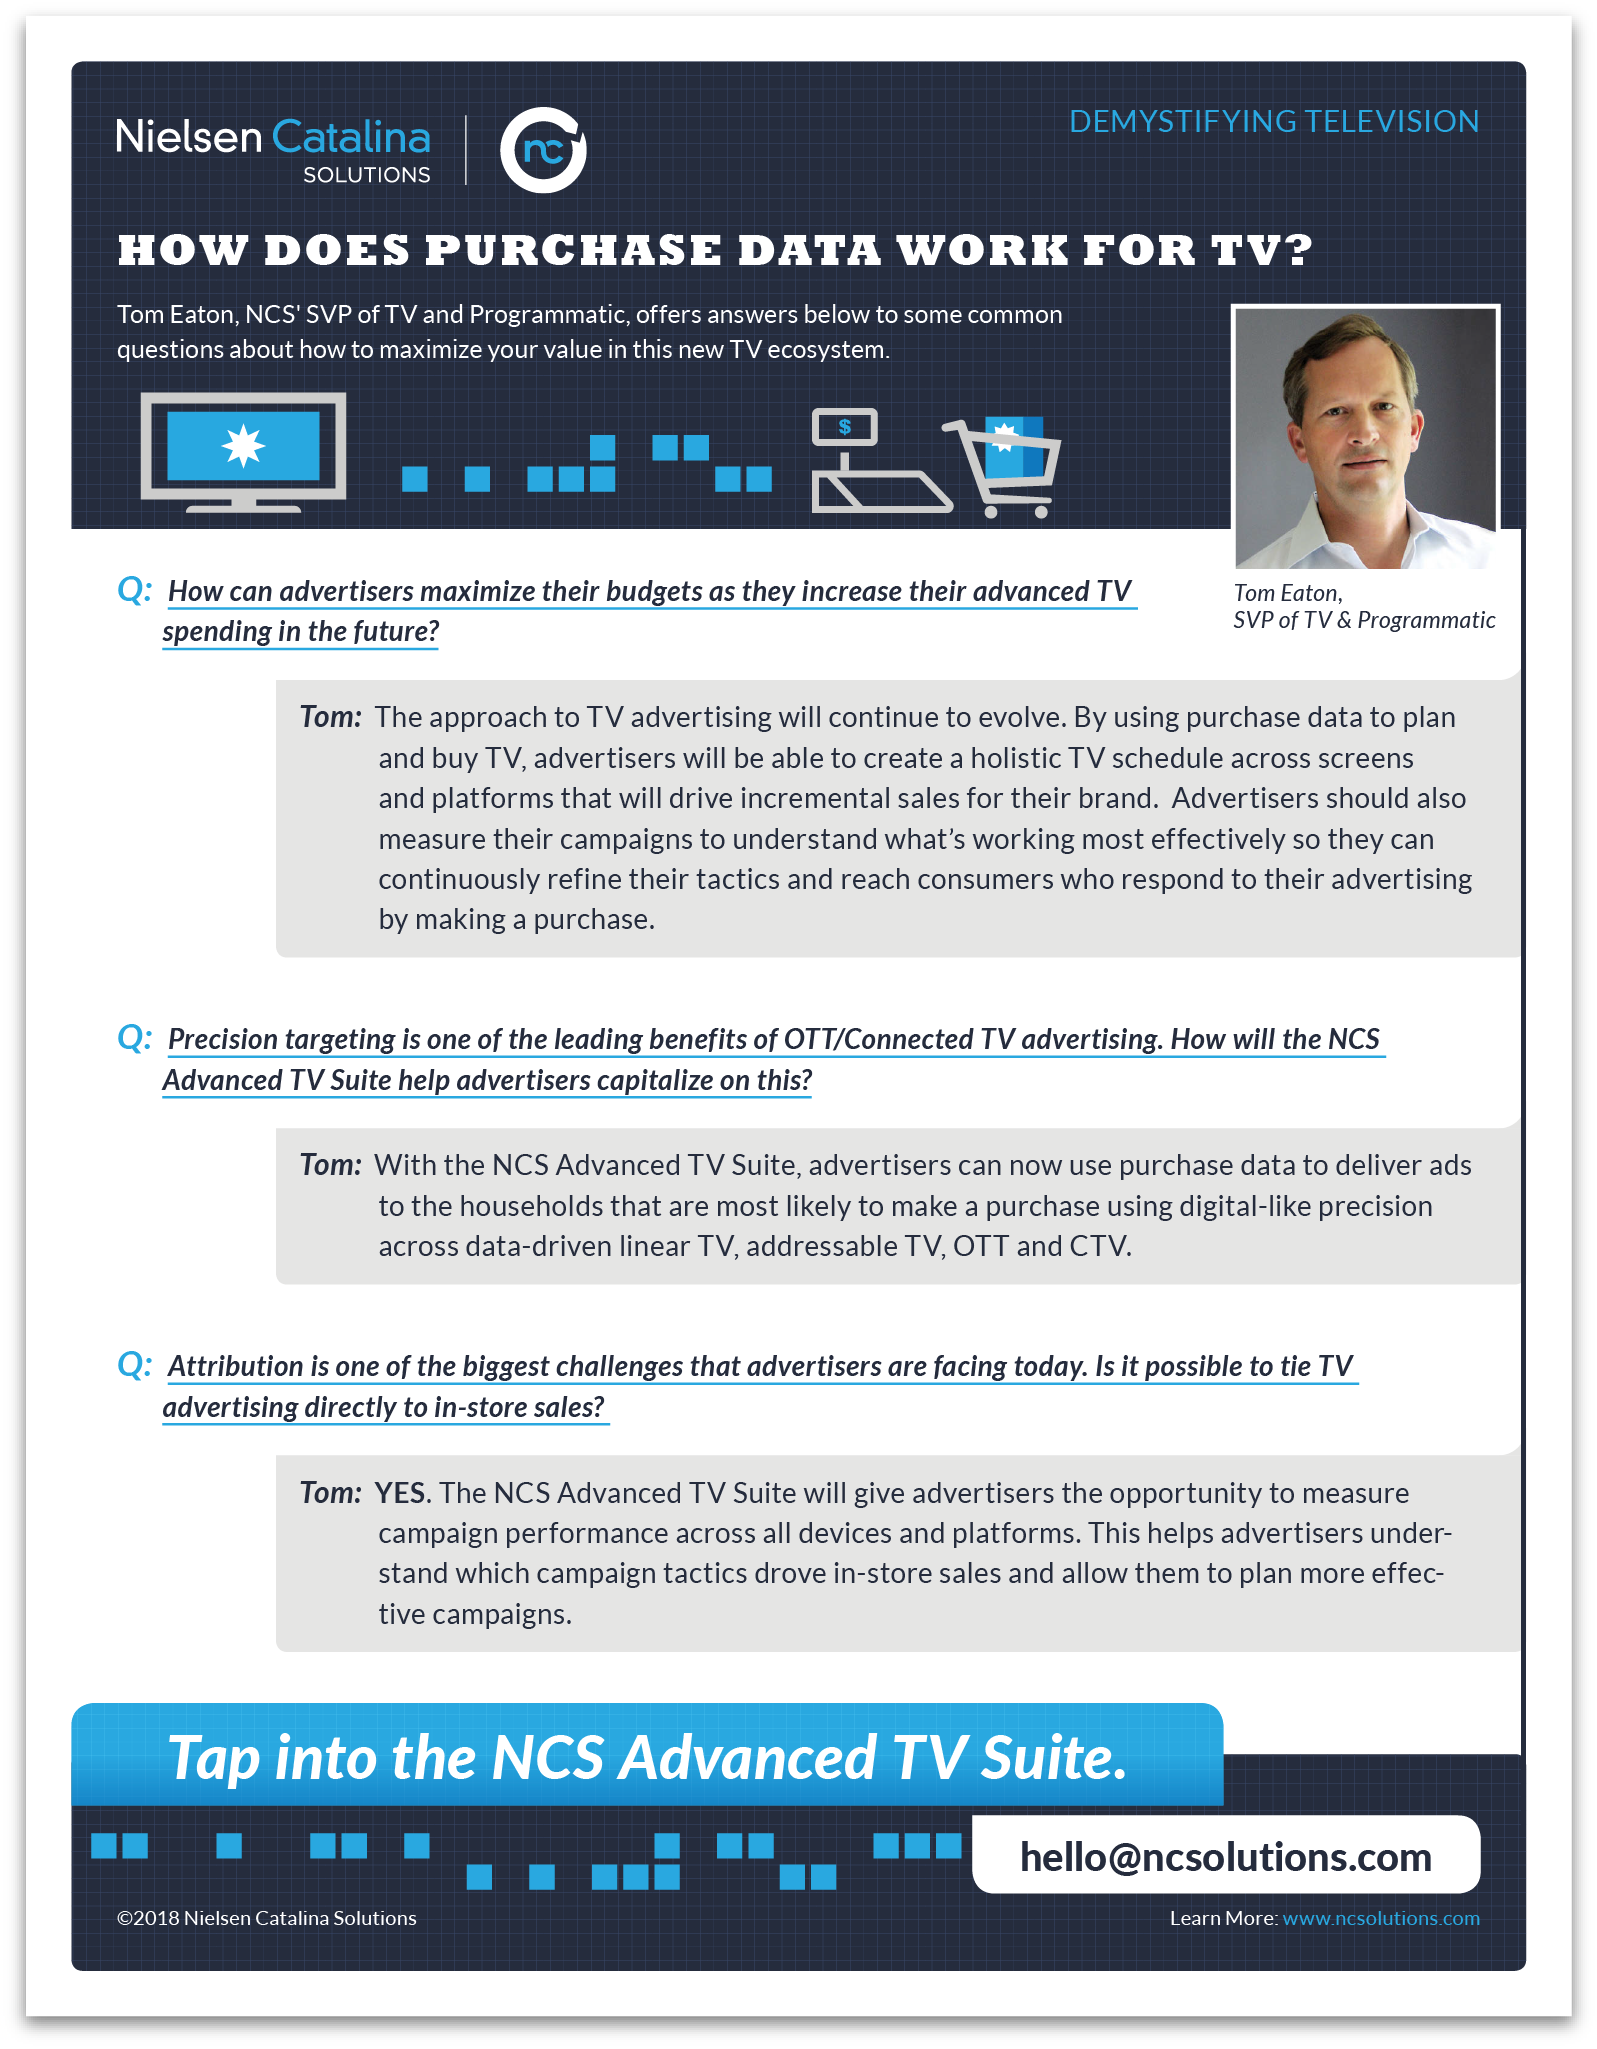 Q&A One Sheet - A one sheet adapted from an interview with NCS's head of Programmatic services. The Q&A describes the advantages the NCS Advanced TV Suite provides to clients.